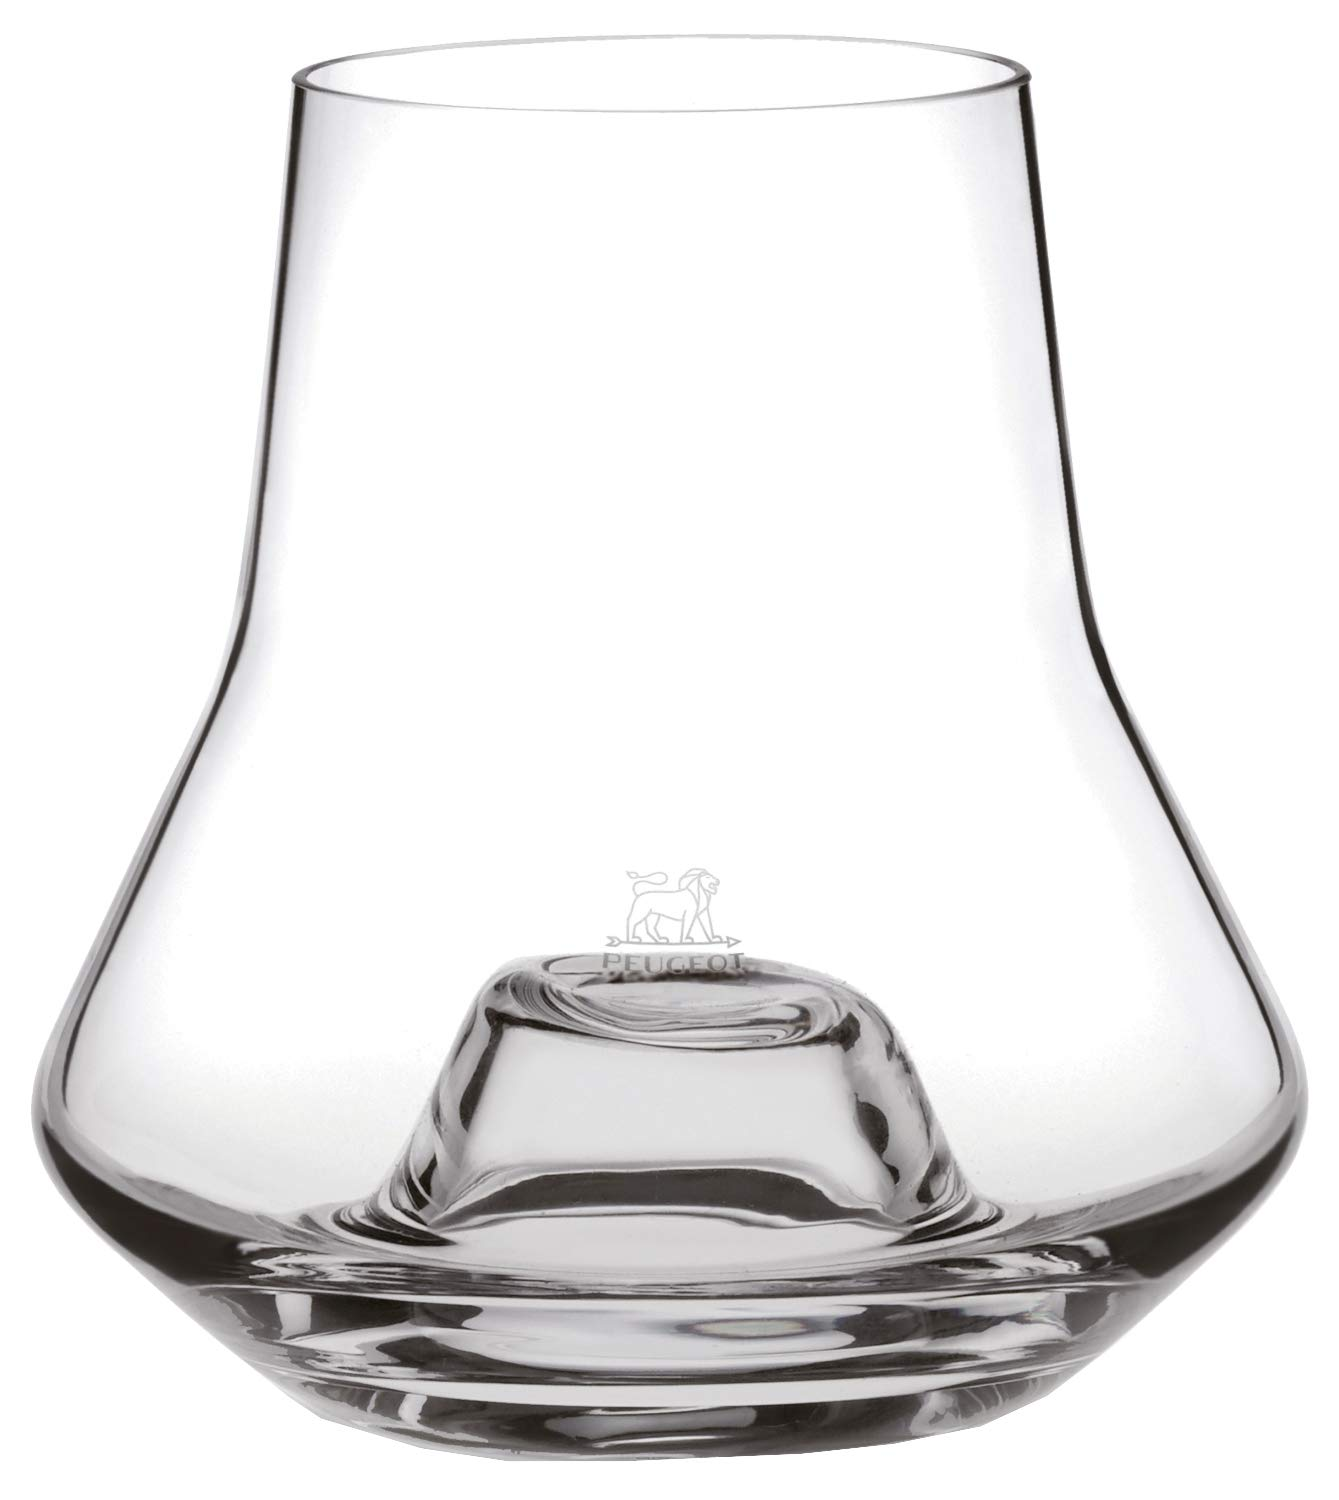 Peugeot 250331 Impitoyable Whisky Cordial Glass without Chilling Base by Peugeot